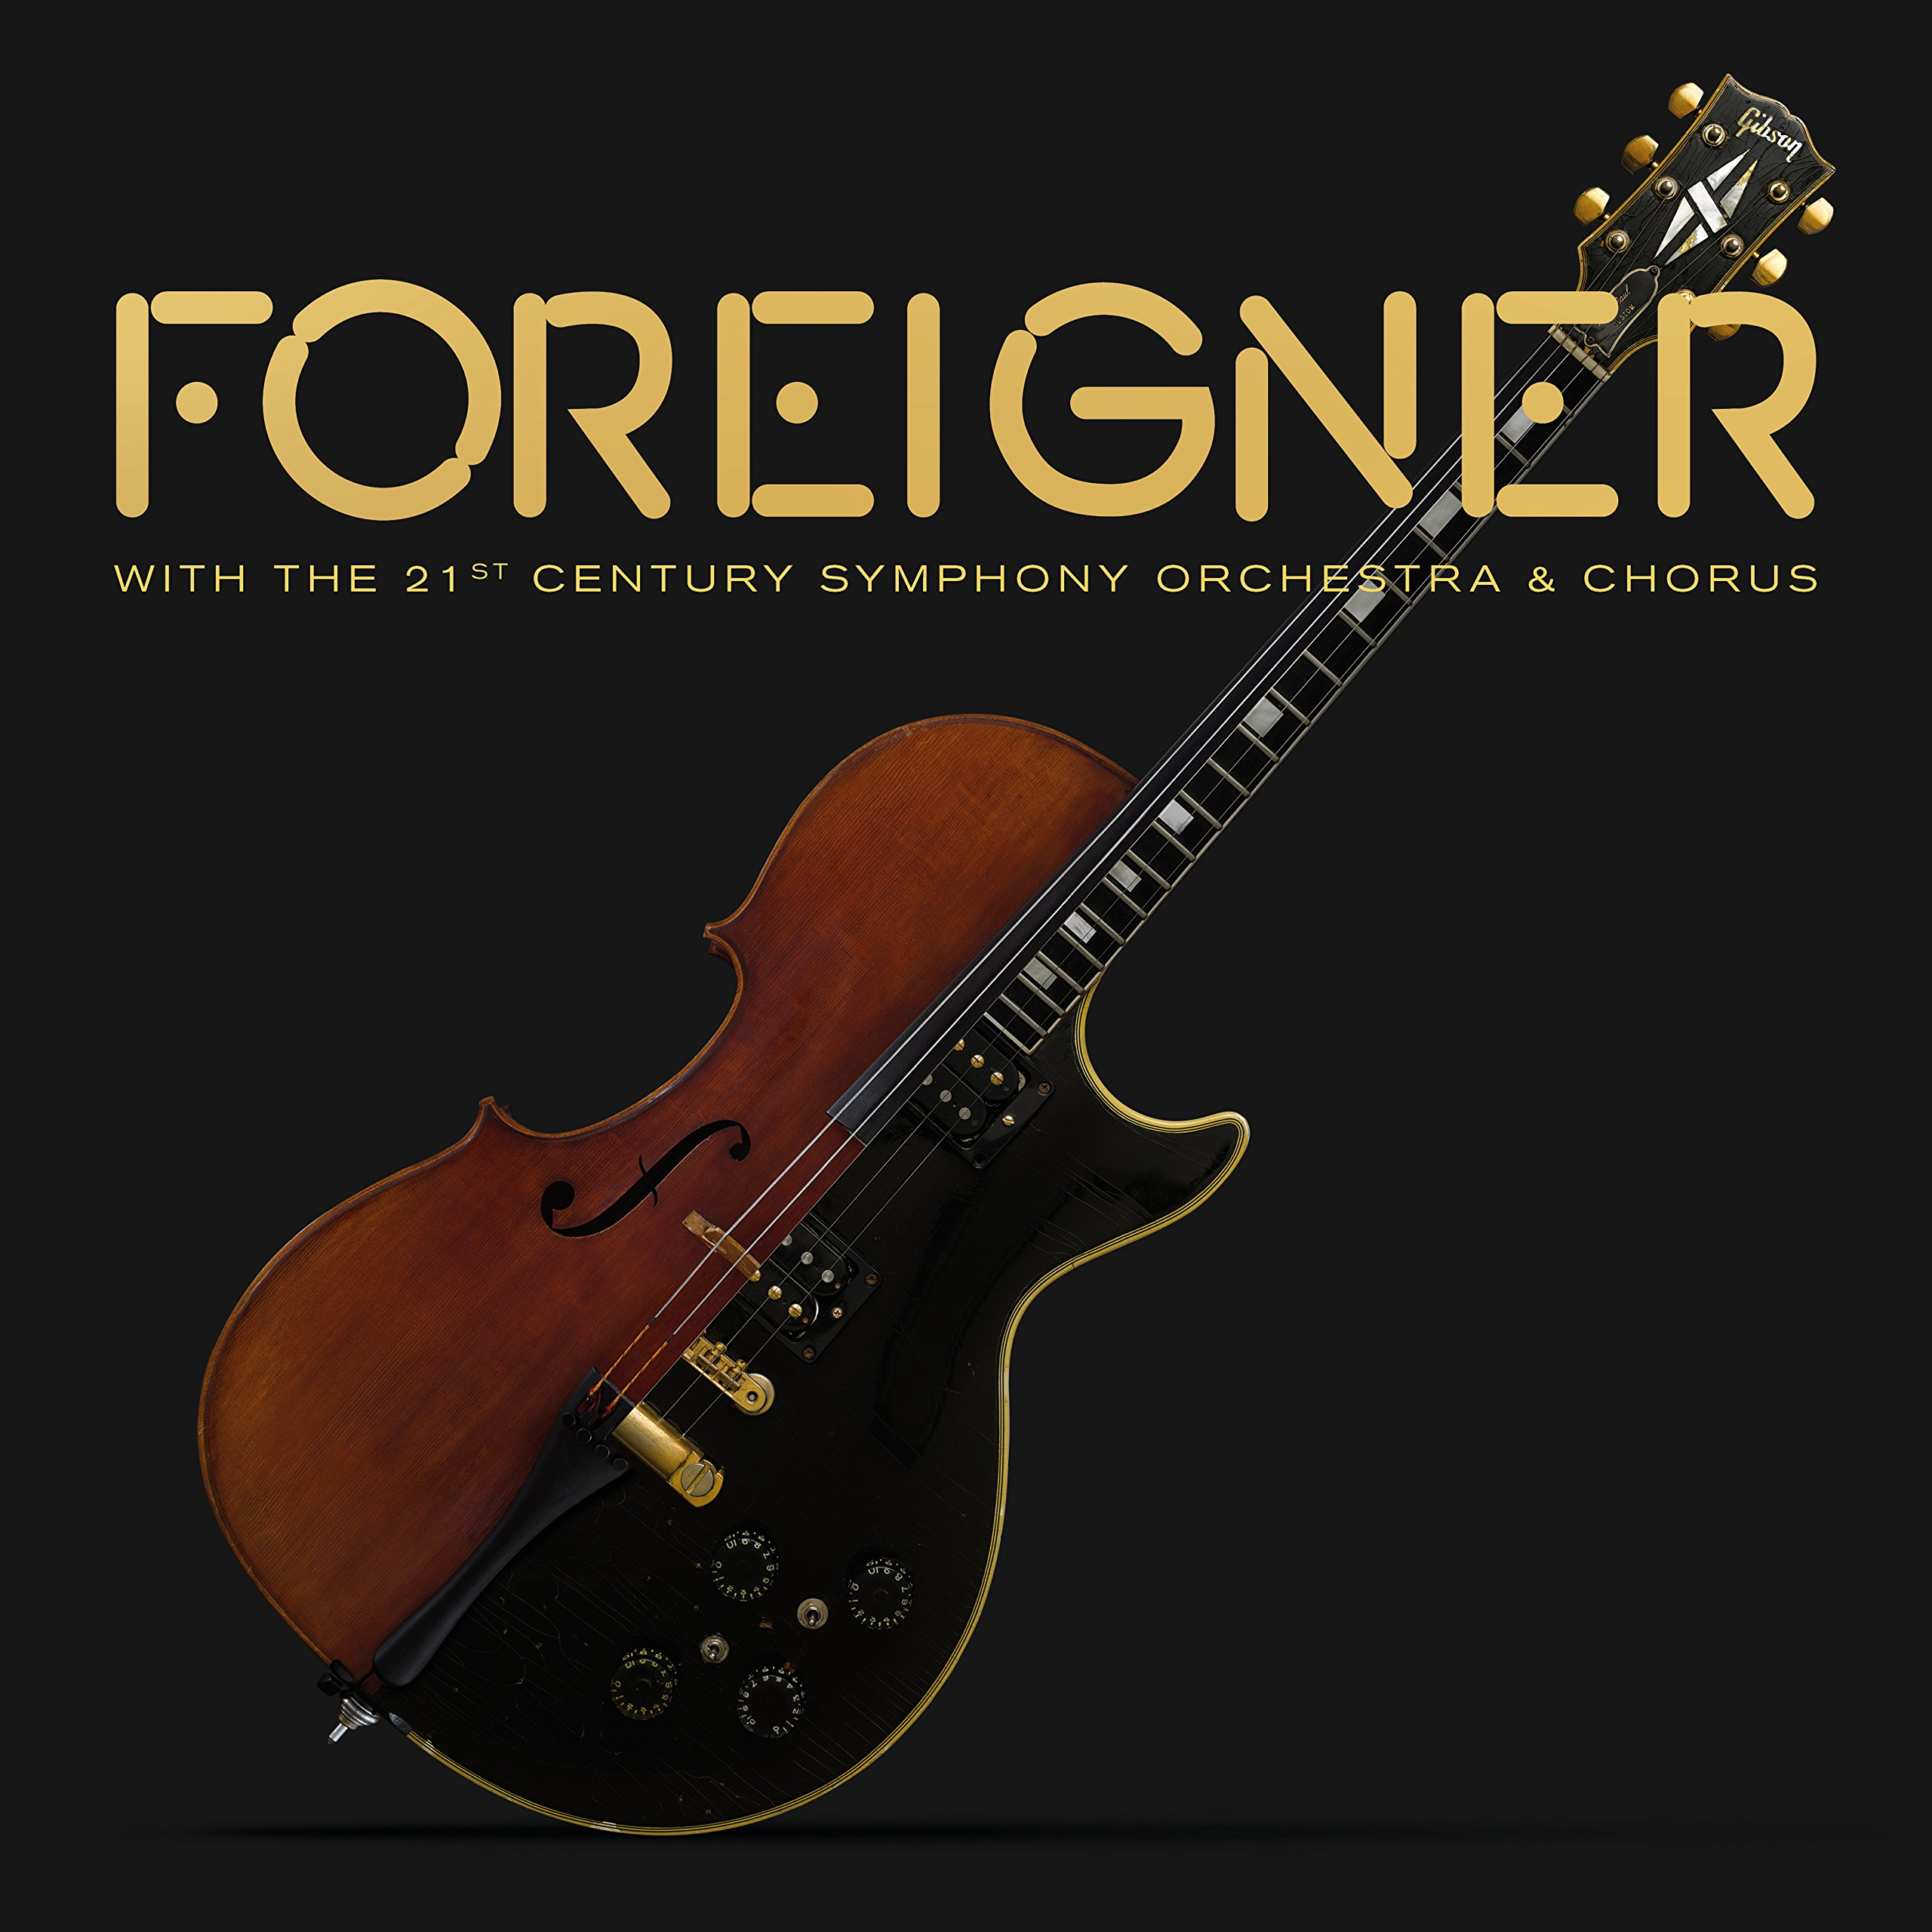 Vinilo : Foreigner - With The 21st Century Symphony Orchestra & Chorus (3PC)